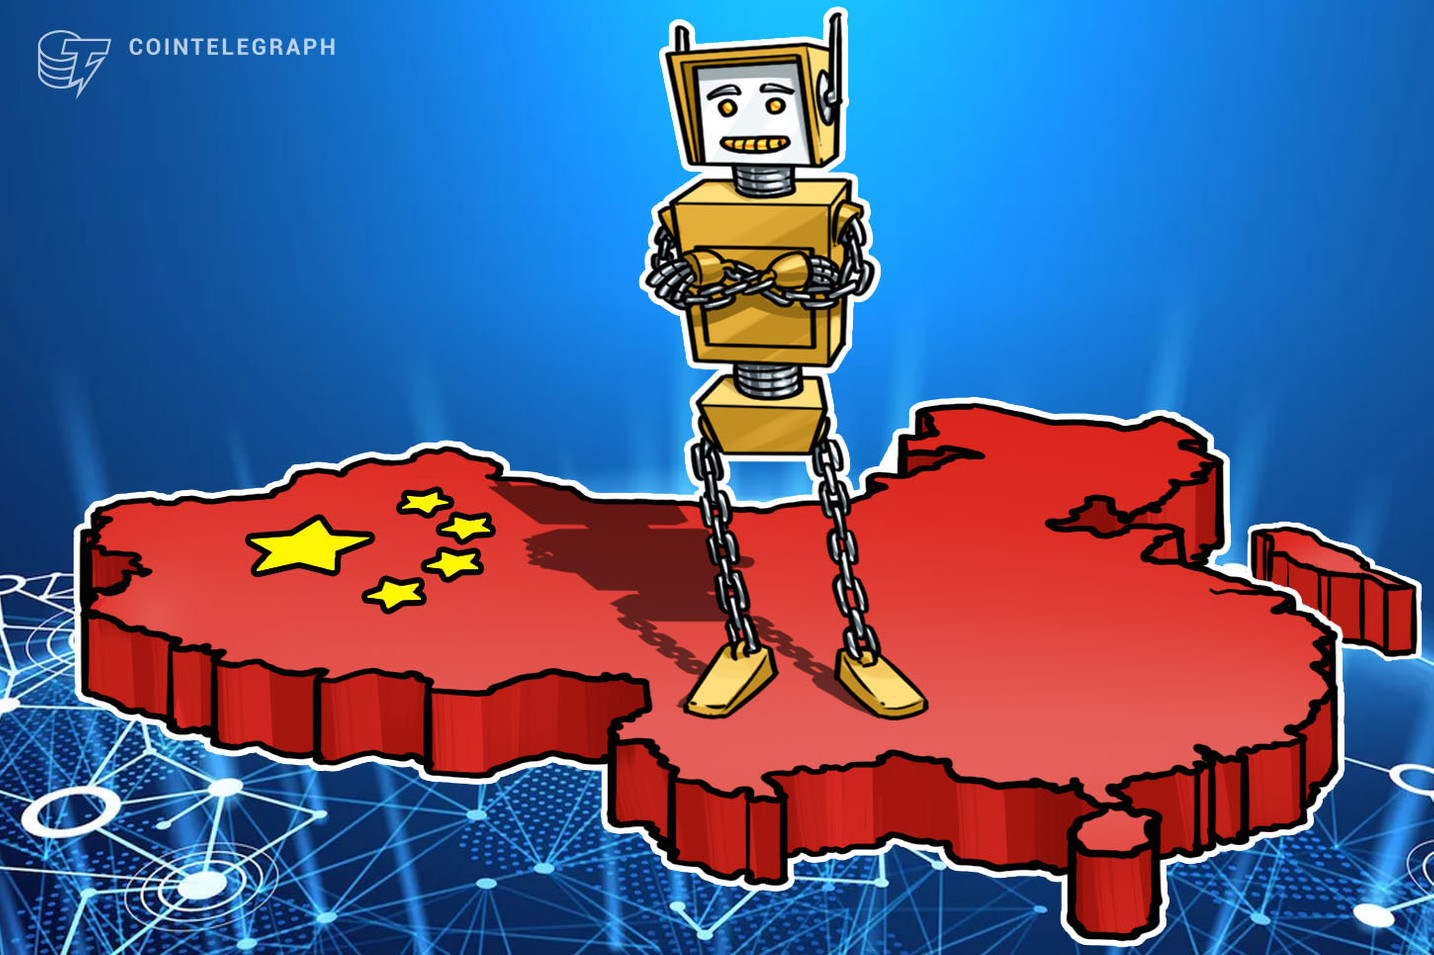 Shanghai Stock Exchange Partners With Major Insurance Firms to Improve Industry With Blockchain